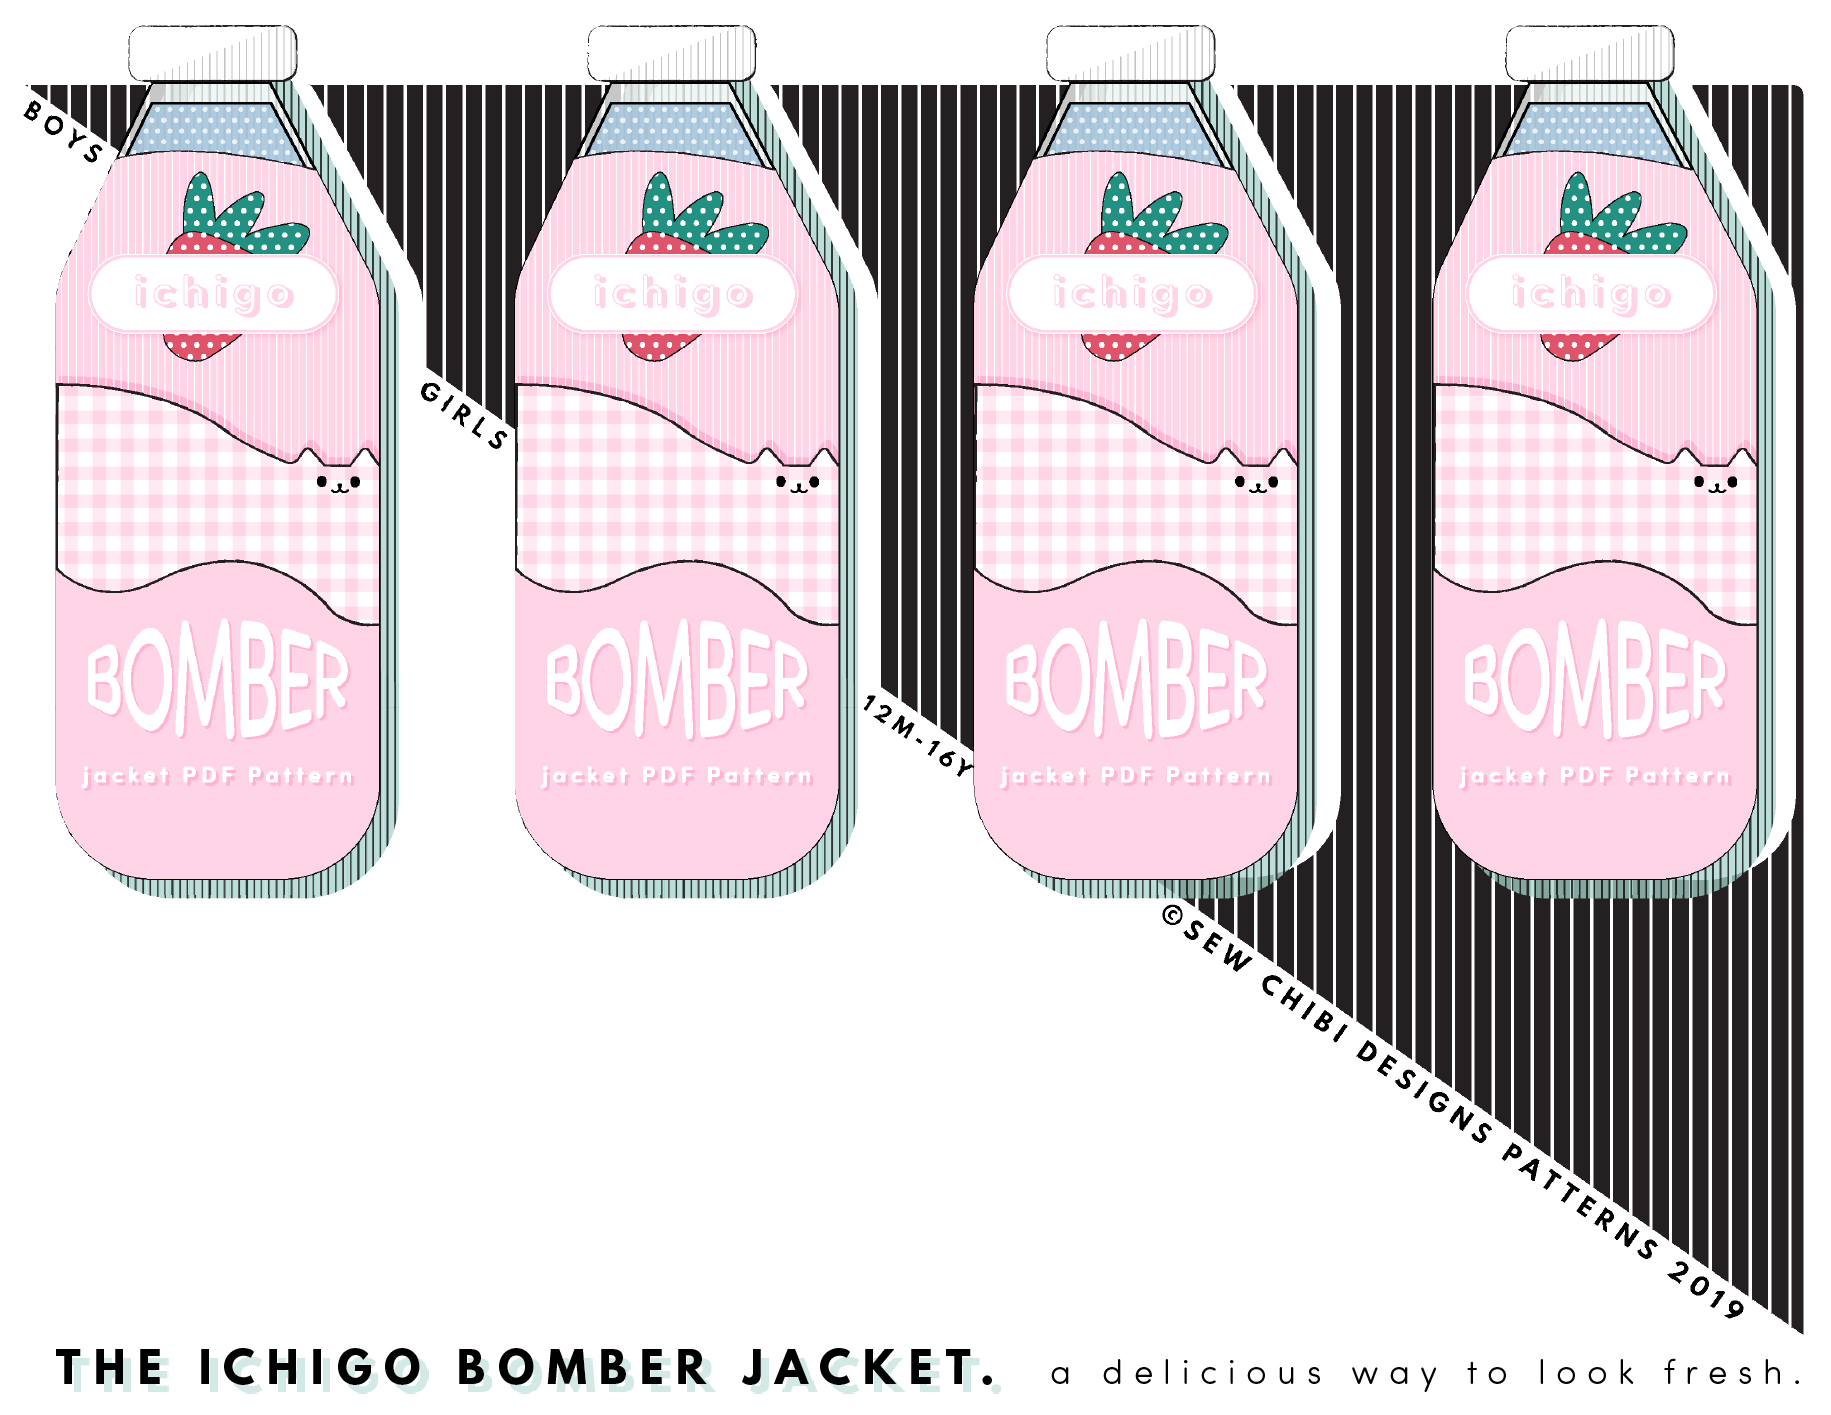 🍓The Ichigo Bomber Jacket PDF Pattern by Sew Chibi Designs. A lightweight, color blocked, knit coat for all kids: boys and girls, from baby to teen! Perfect for spring!